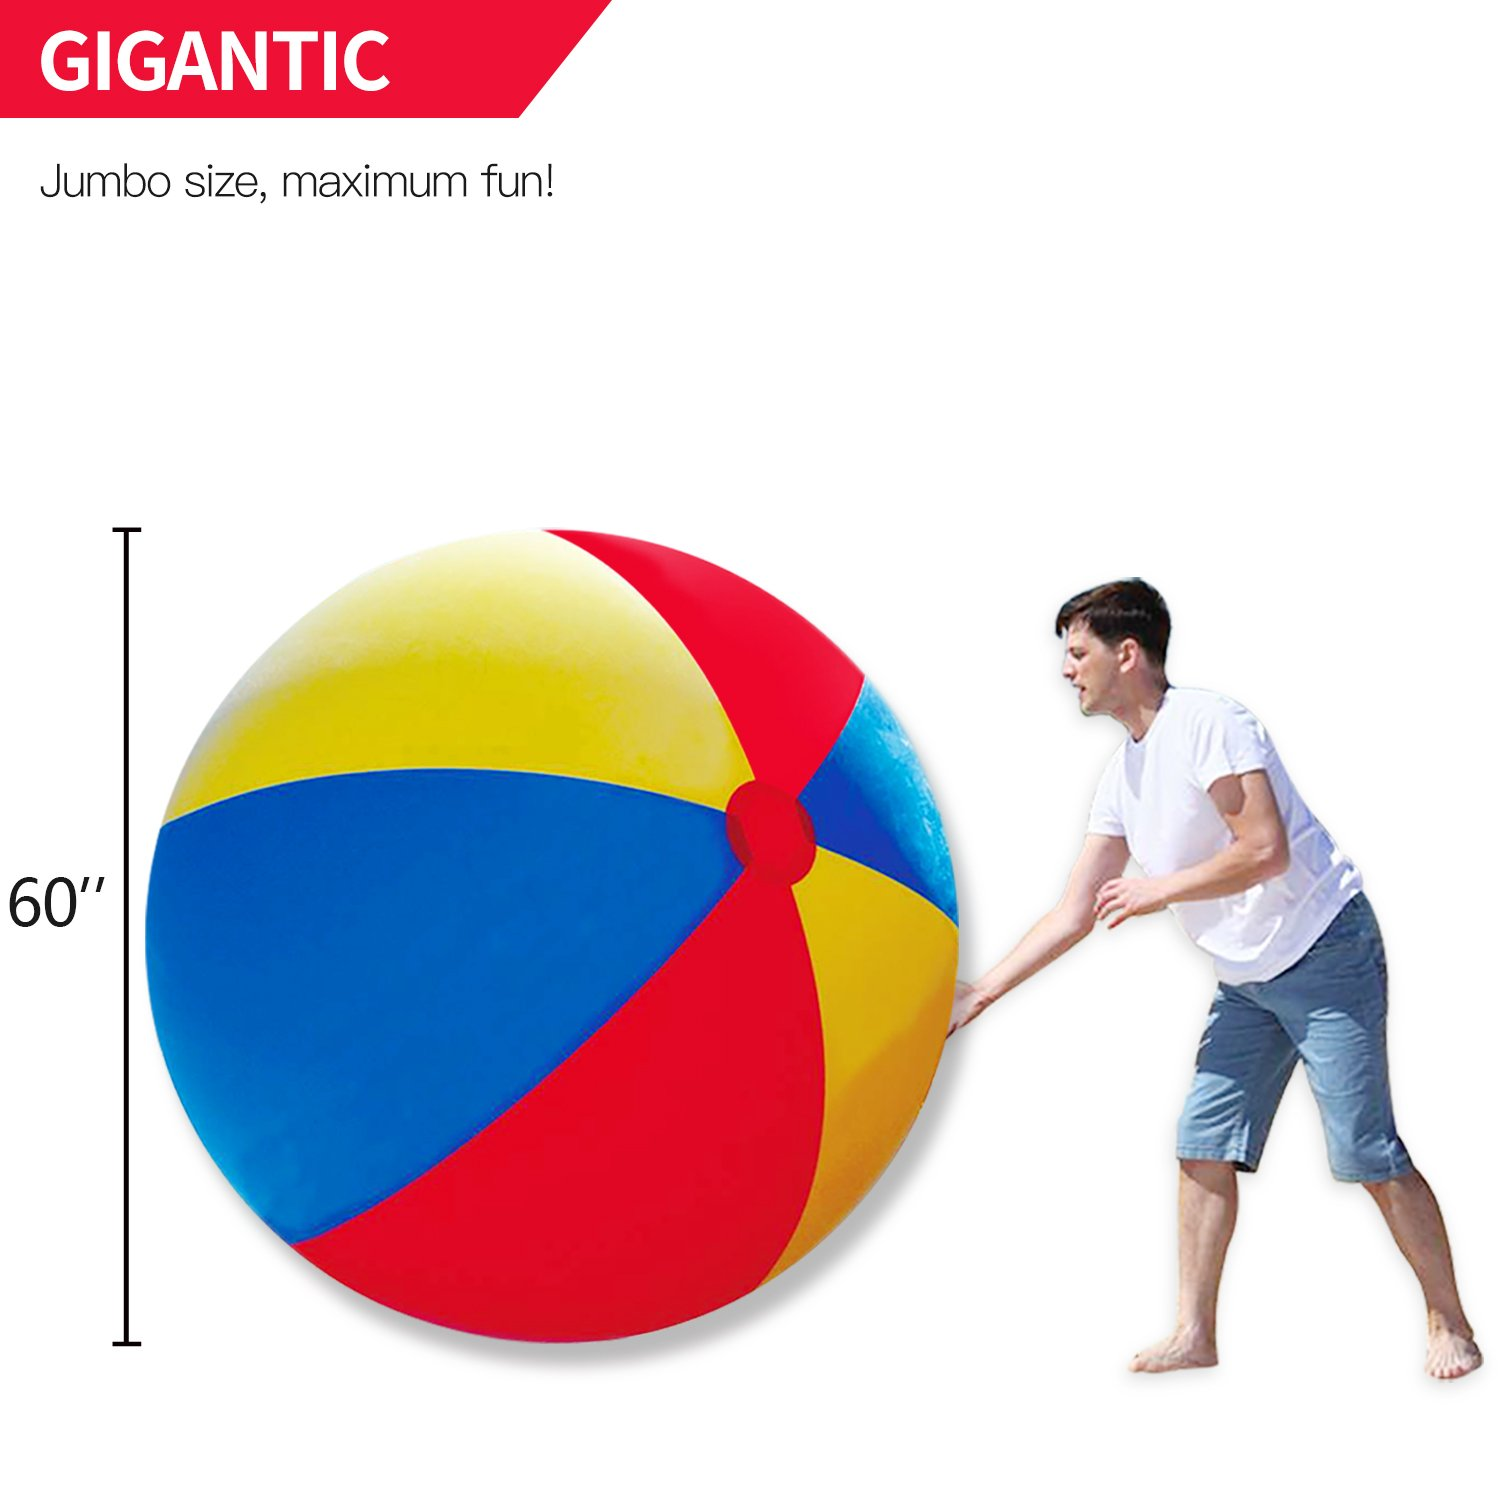 Novelty Place Gigante Pelota de Playa Inflable, Juego de Piscina ...